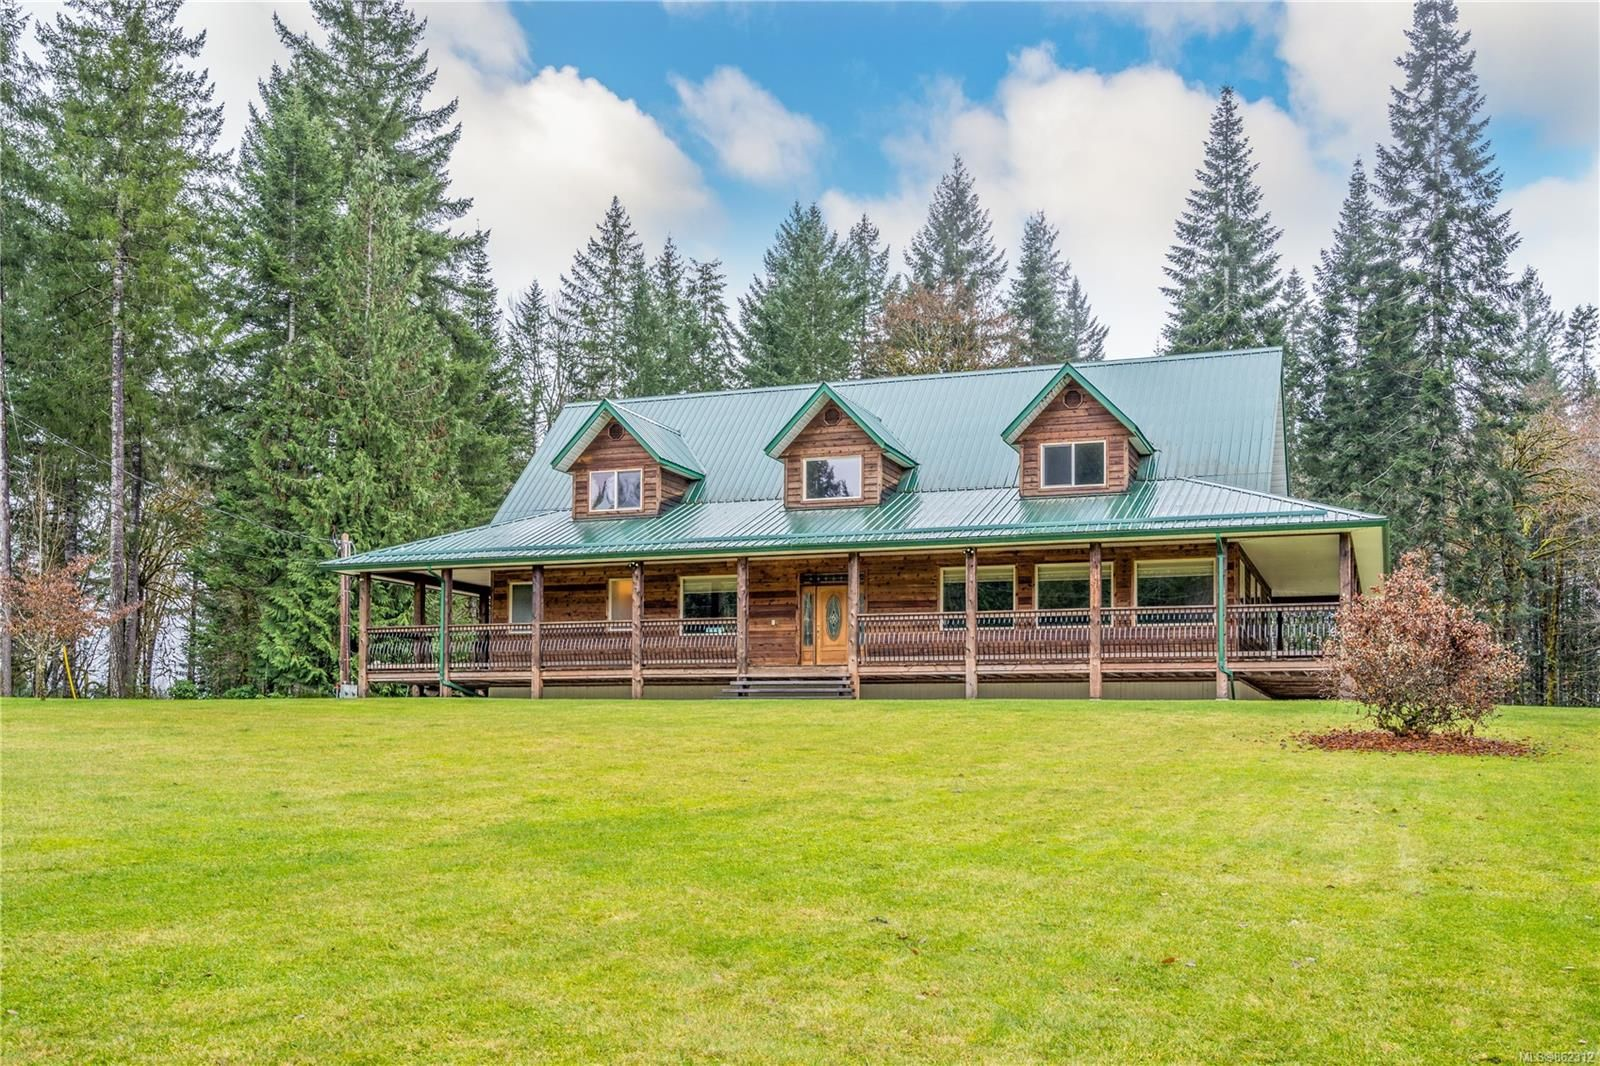 Main Photo: 7380 Plymouth Rd in : PA Alberni Valley House for sale (Port Alberni)  : MLS®# 862312